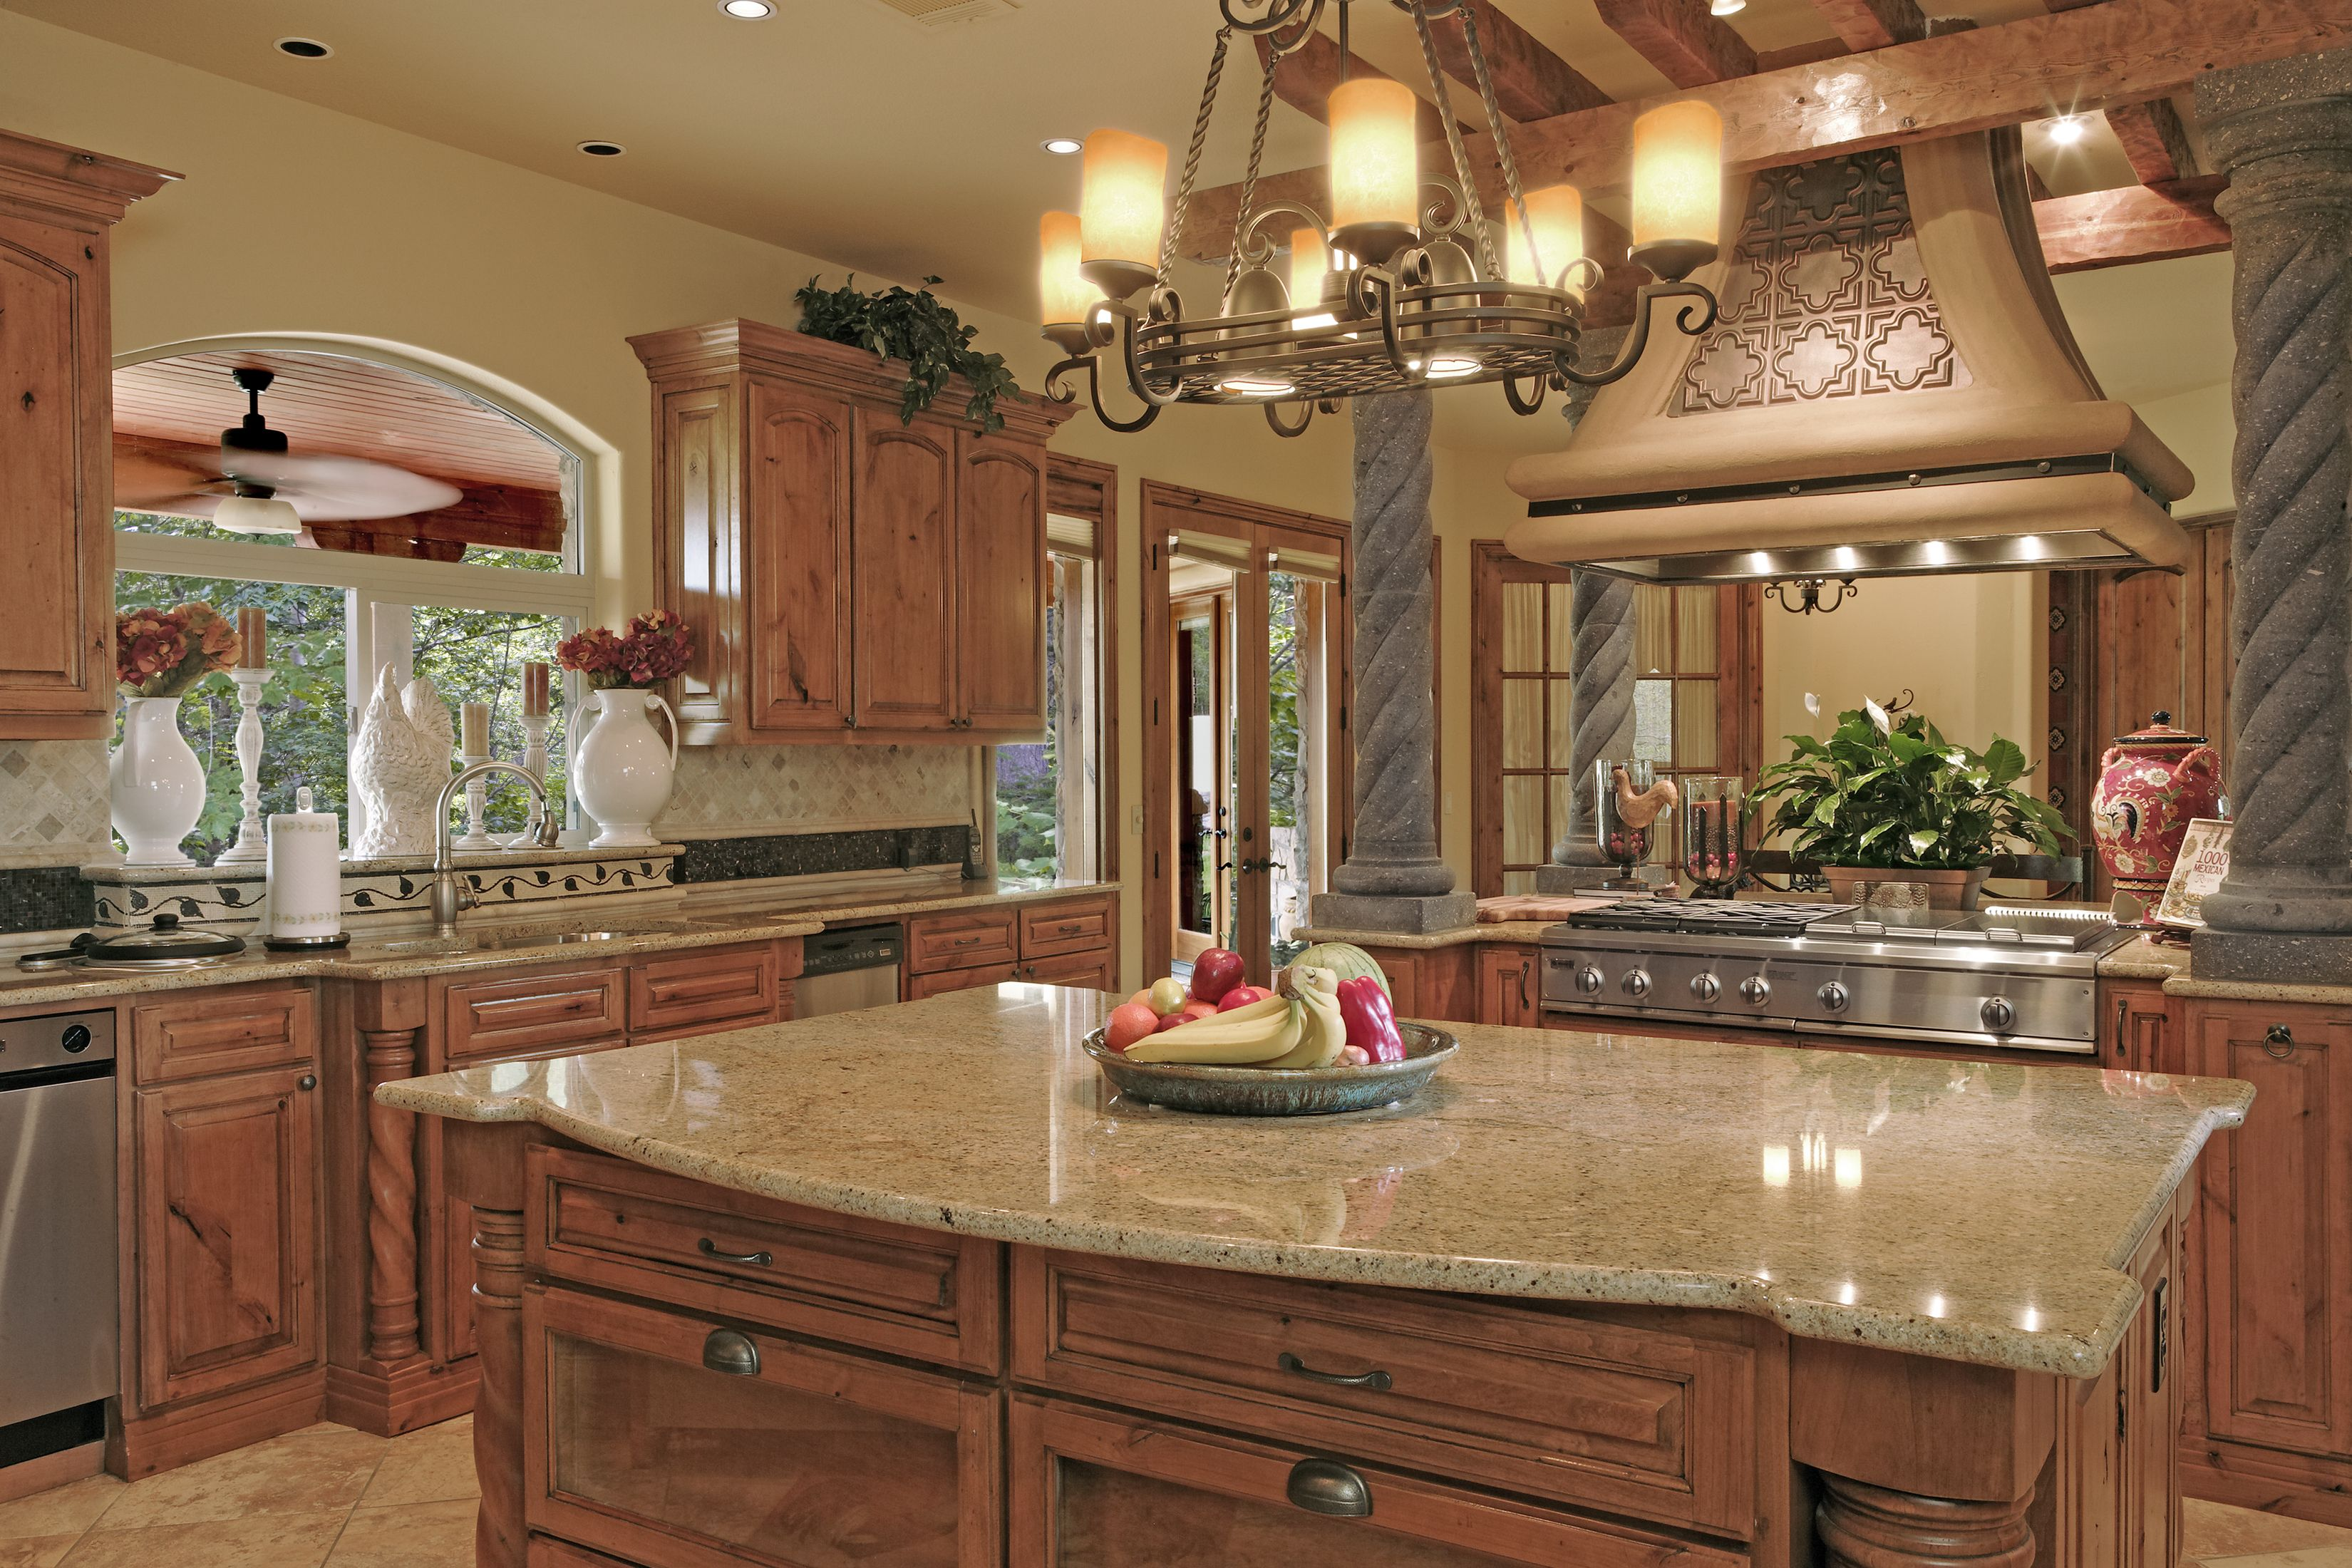 Artisan Stone Collection Granite Countertops in a